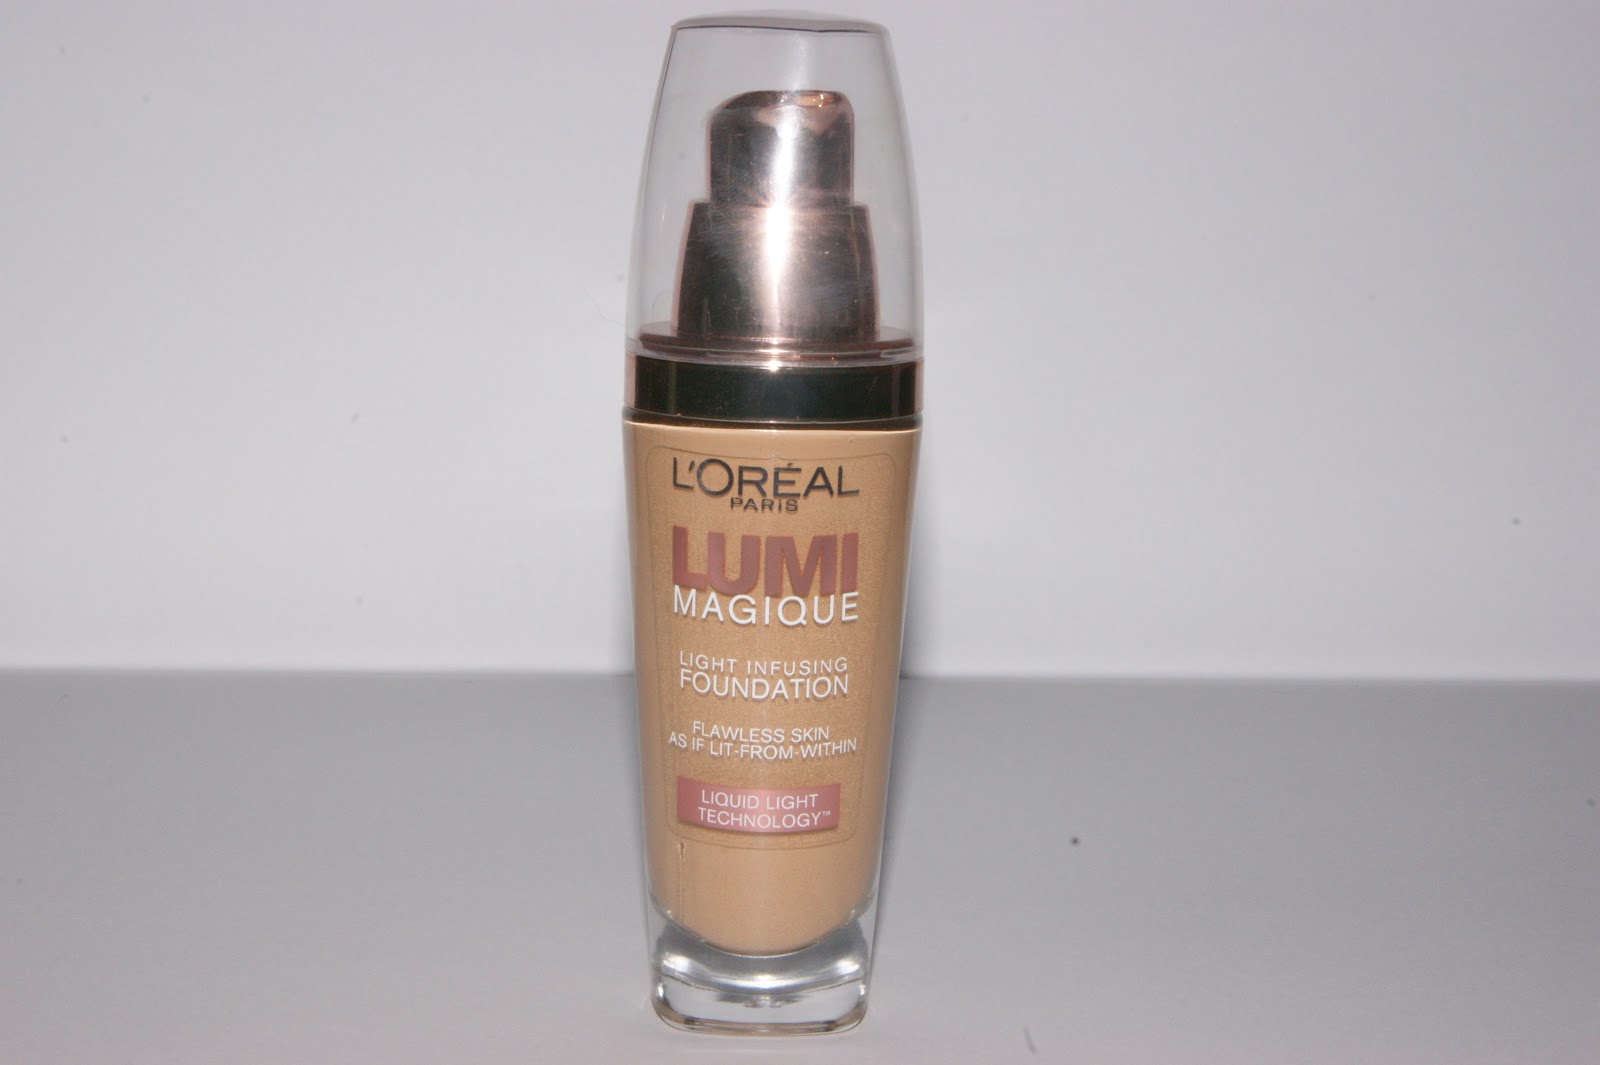 L'Oreal Lumi Magique Foundation Review | The Sunday Girl